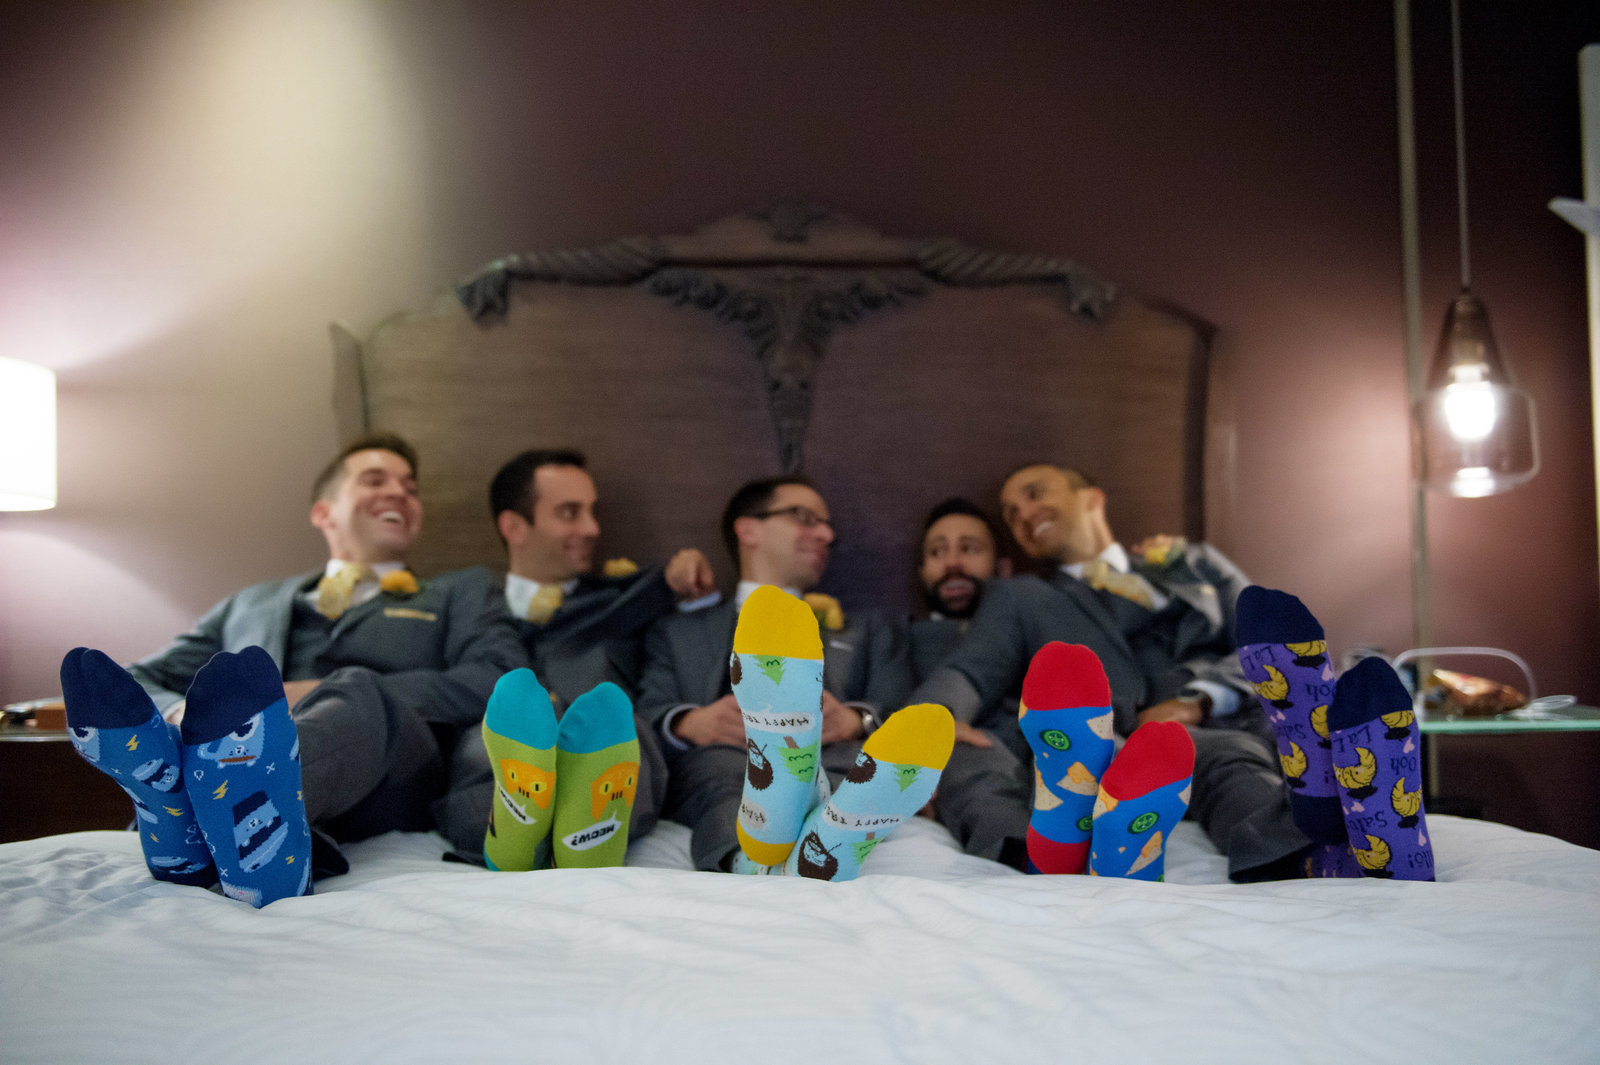 groomsmen lay on bed to show off their silly wedding day socks